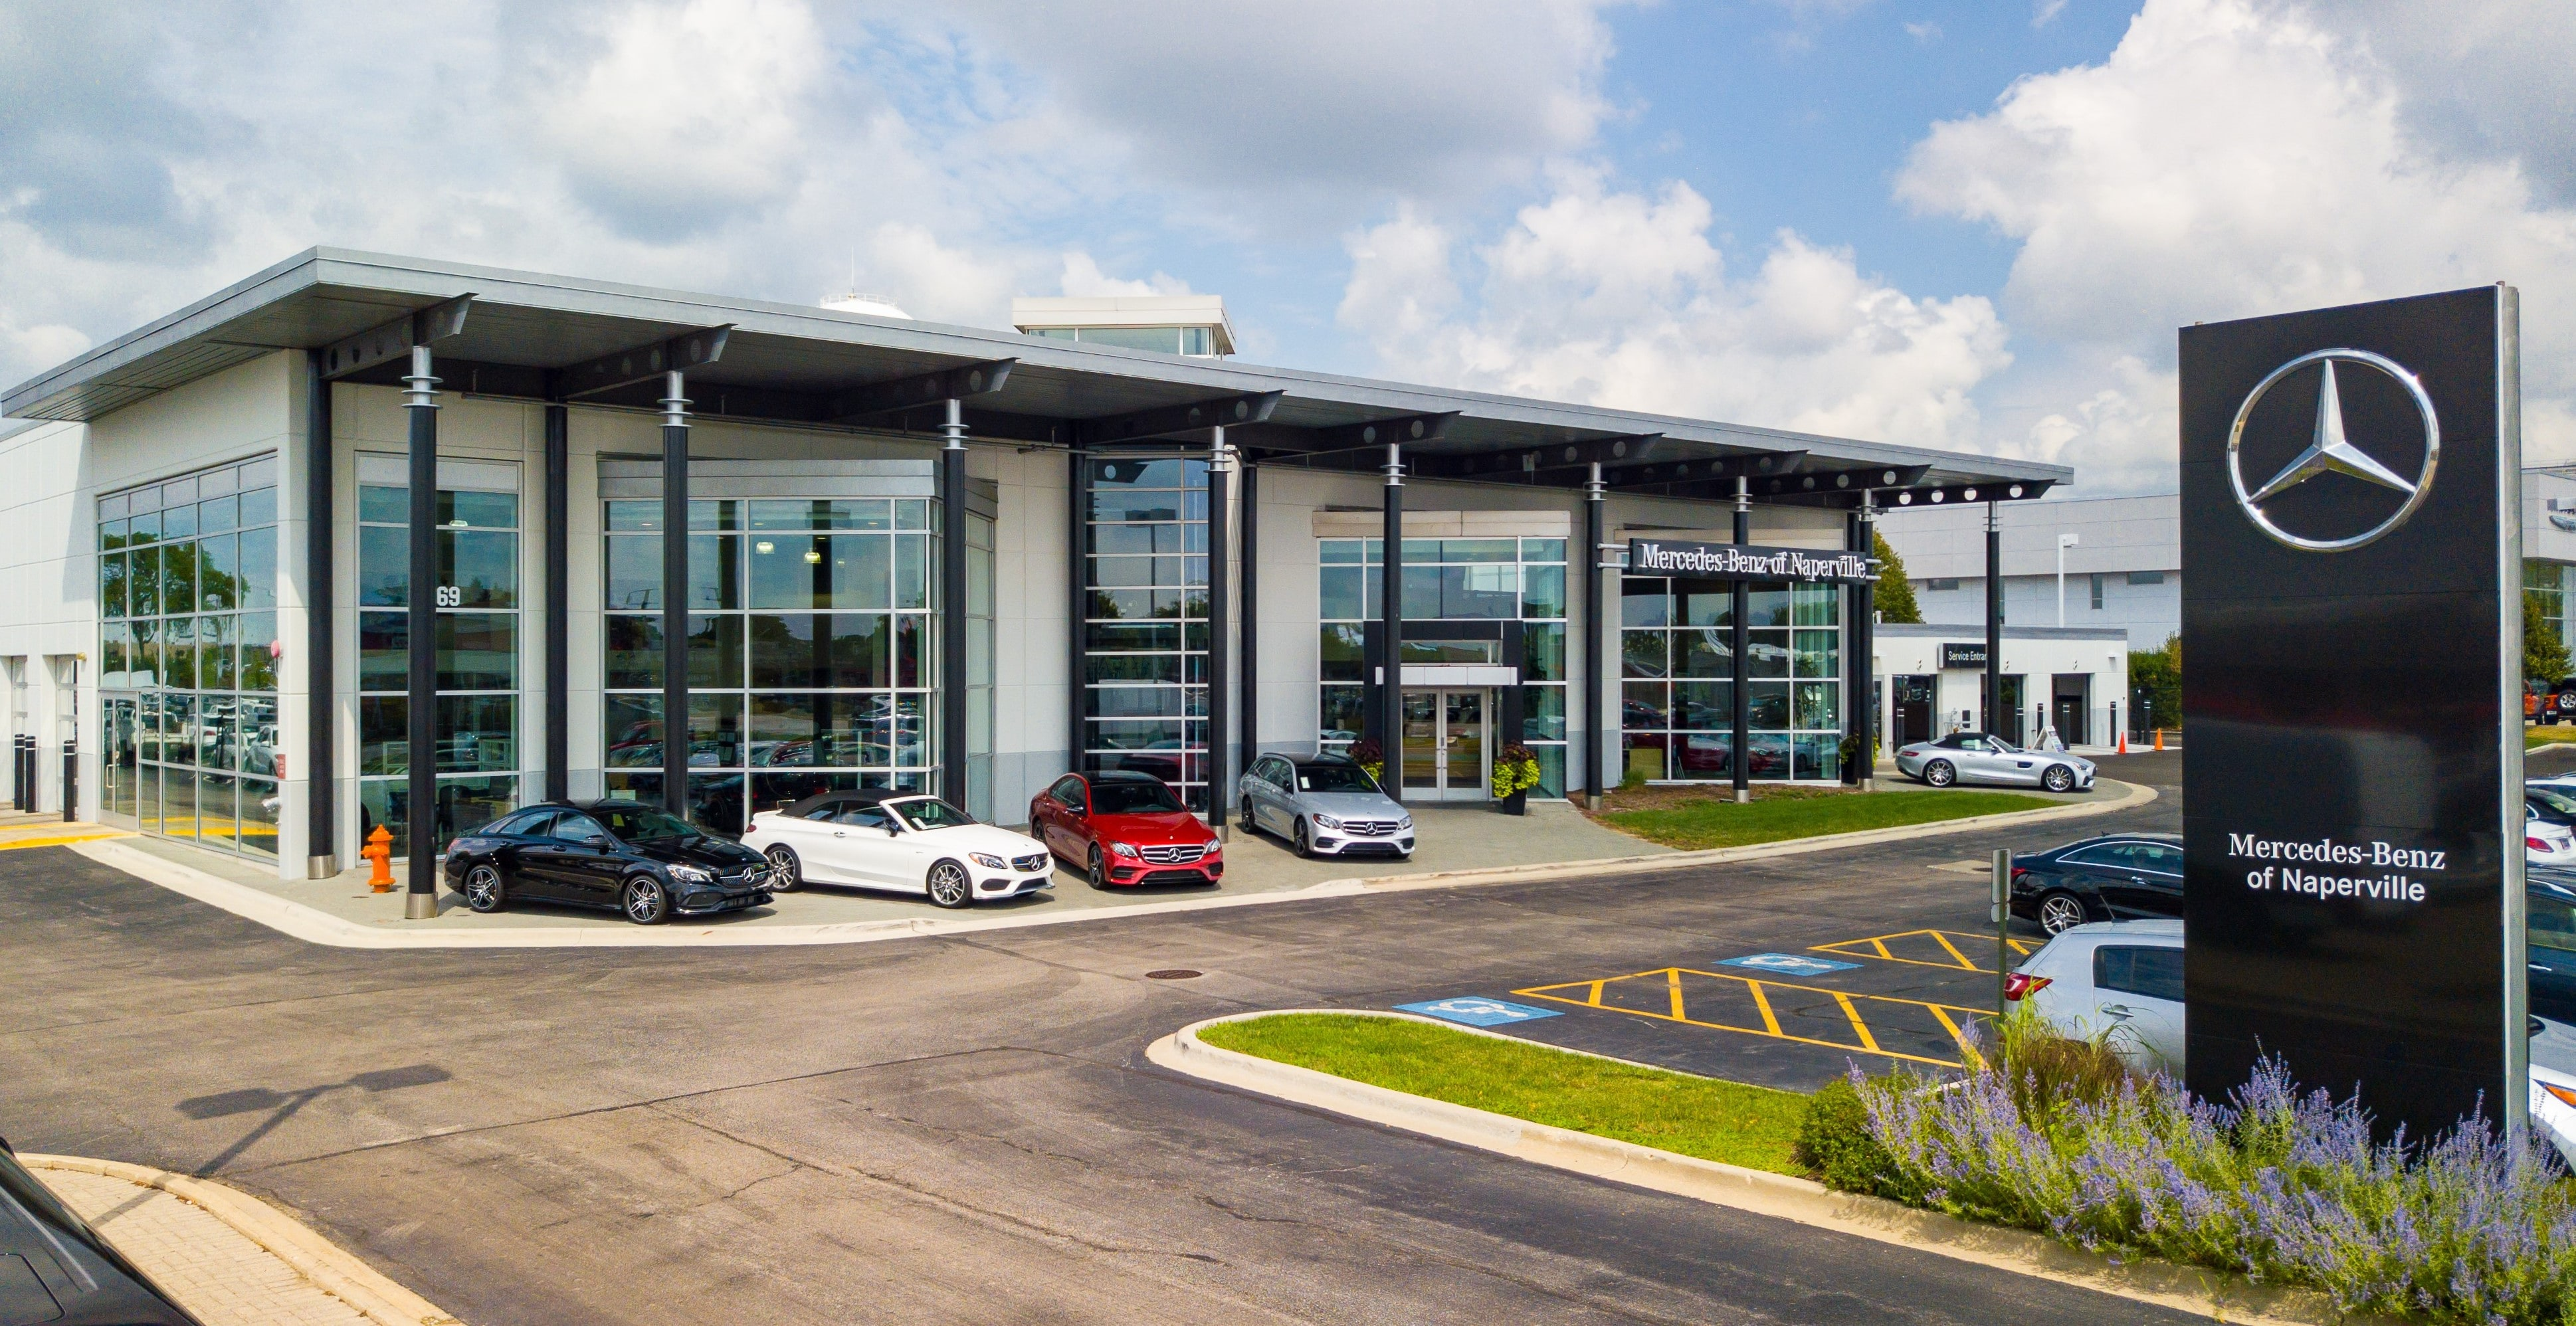 Outside view of Mercedes-Benz of Naperville